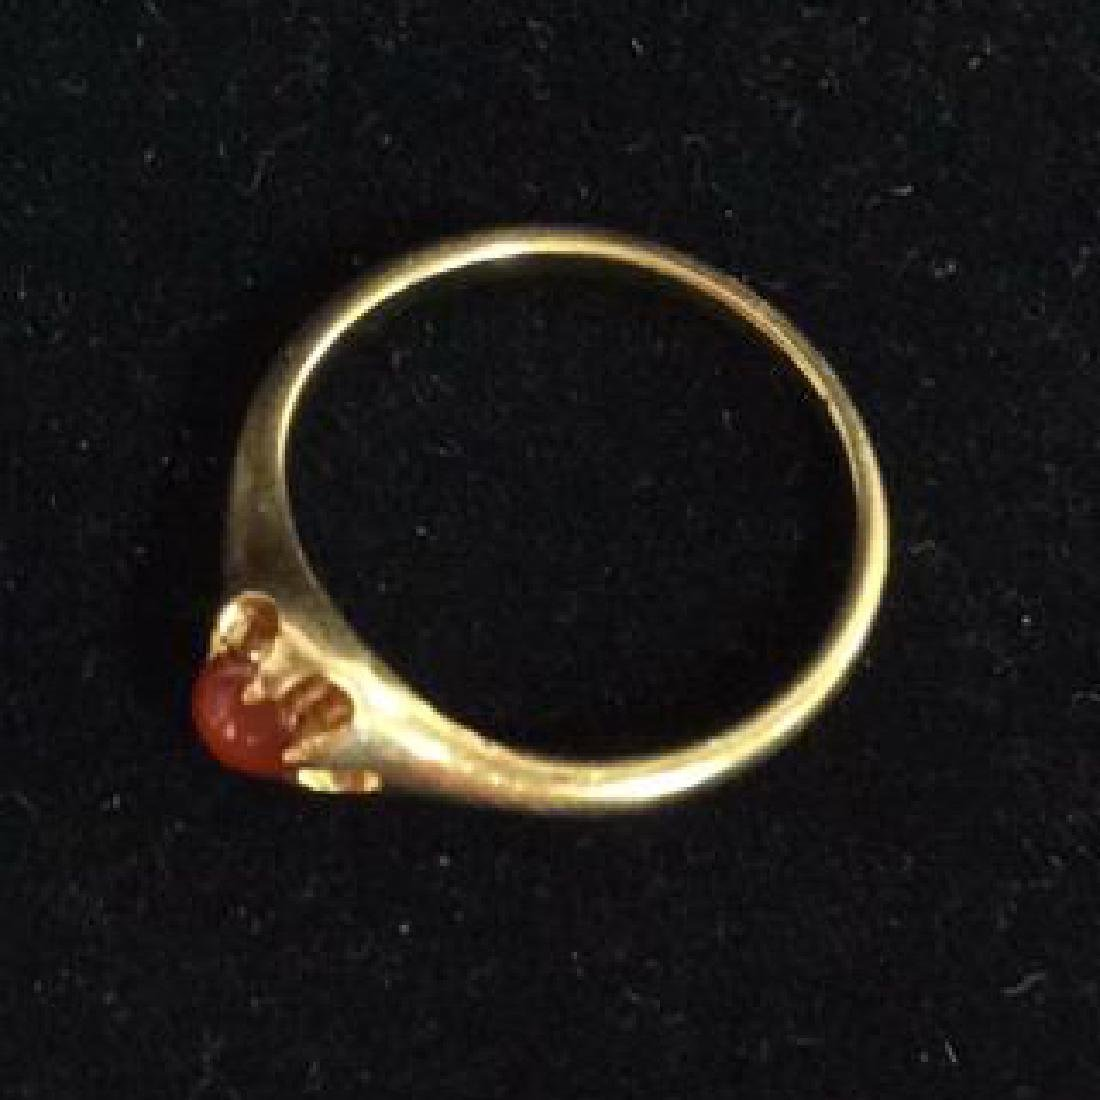 14 K Gold Ring With Natural Stone - 4